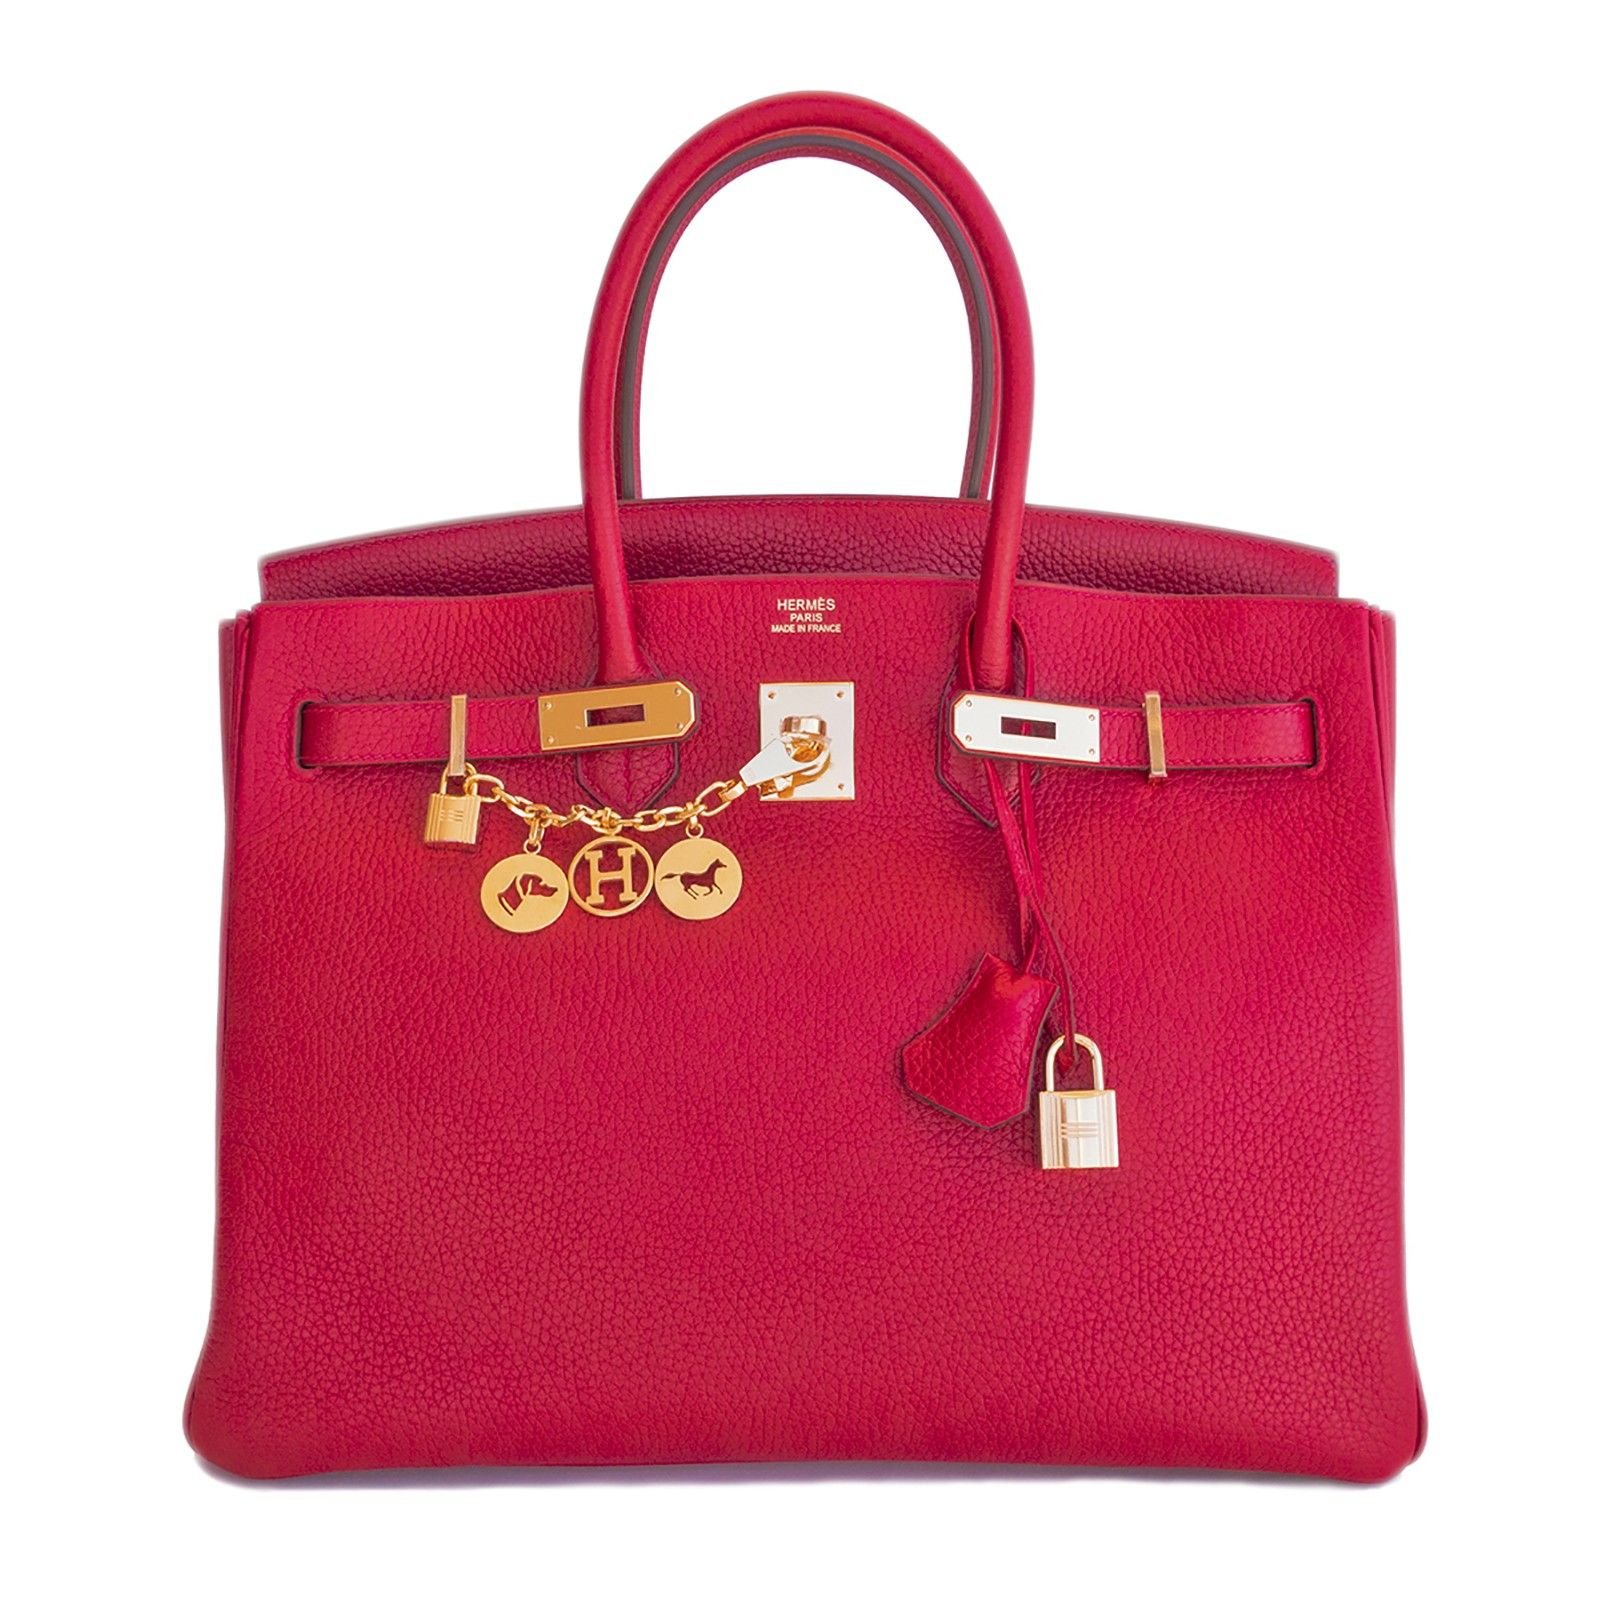 00ff49b4d97 Hermes Rouge Casaque Lipstick Red 35cm Birkin Gold GHW Tote Satchel Bag -  Store fresh. Pristine condition. T stamp. Perfect gift! Coming full set  with keys